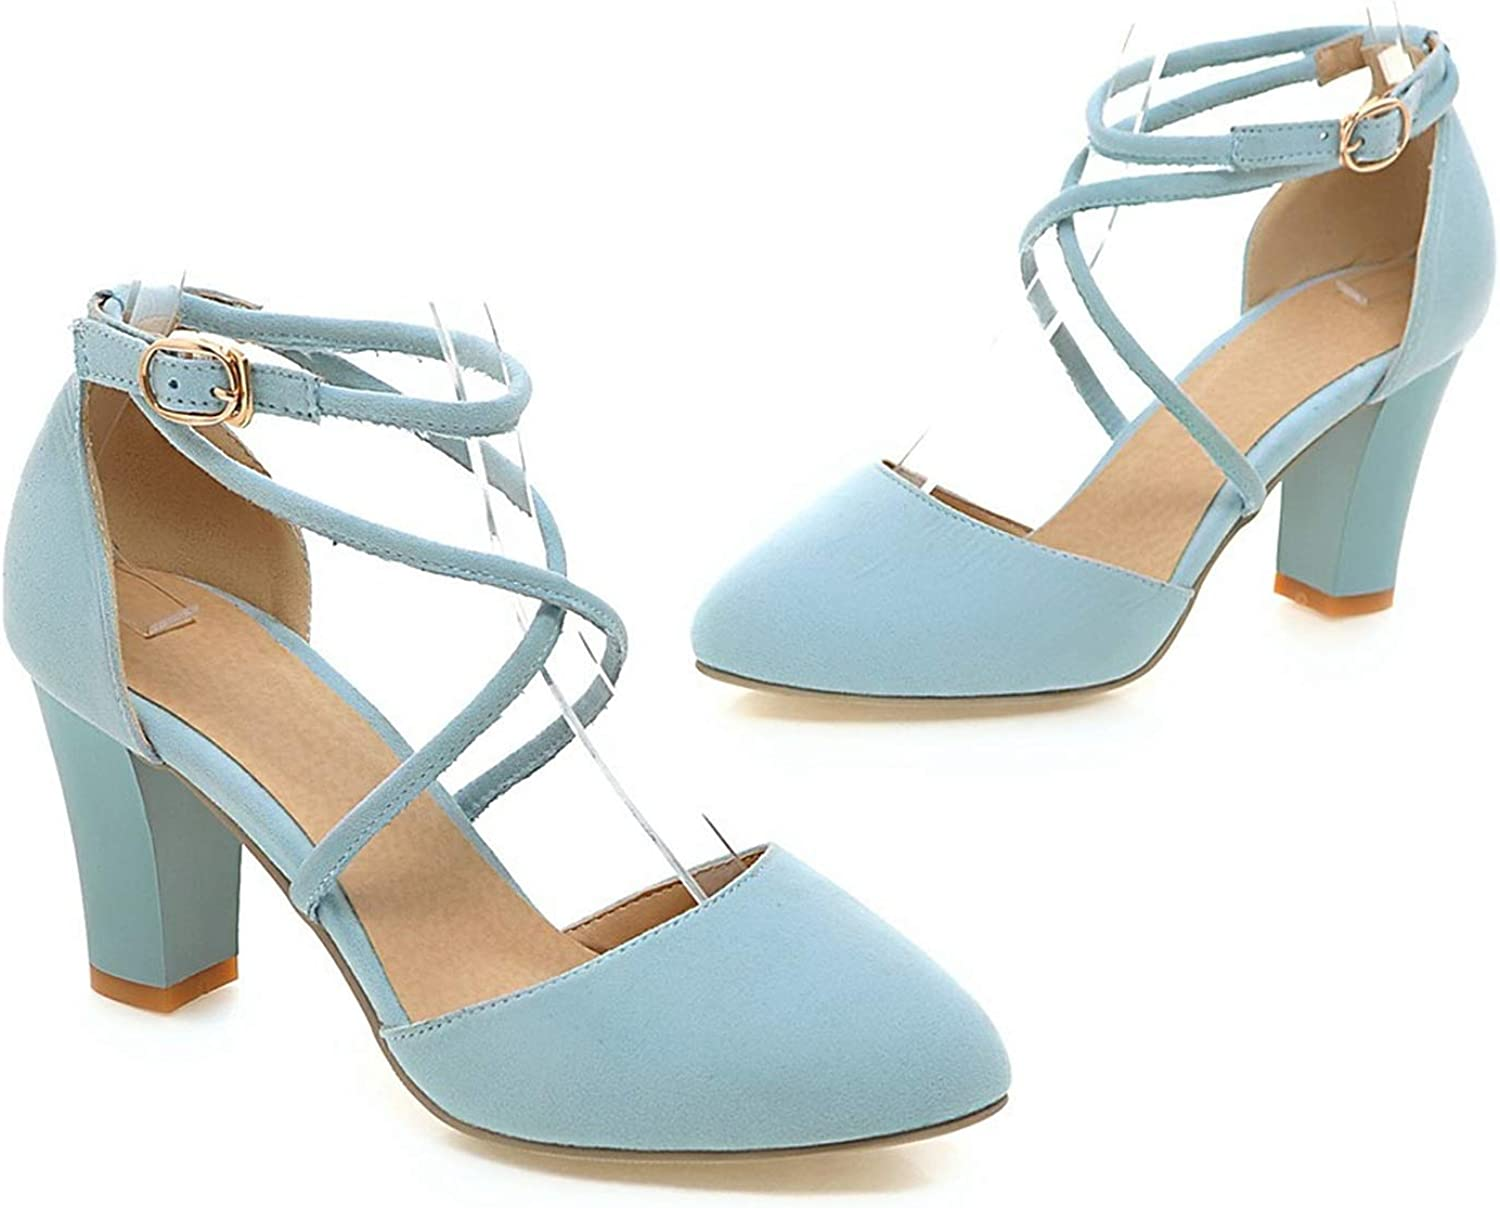 Sexy Ladies shoes high Heels Round Toe Square Heel with Buckle Grey Light bluee color Pumps shoes,Light bluee,5